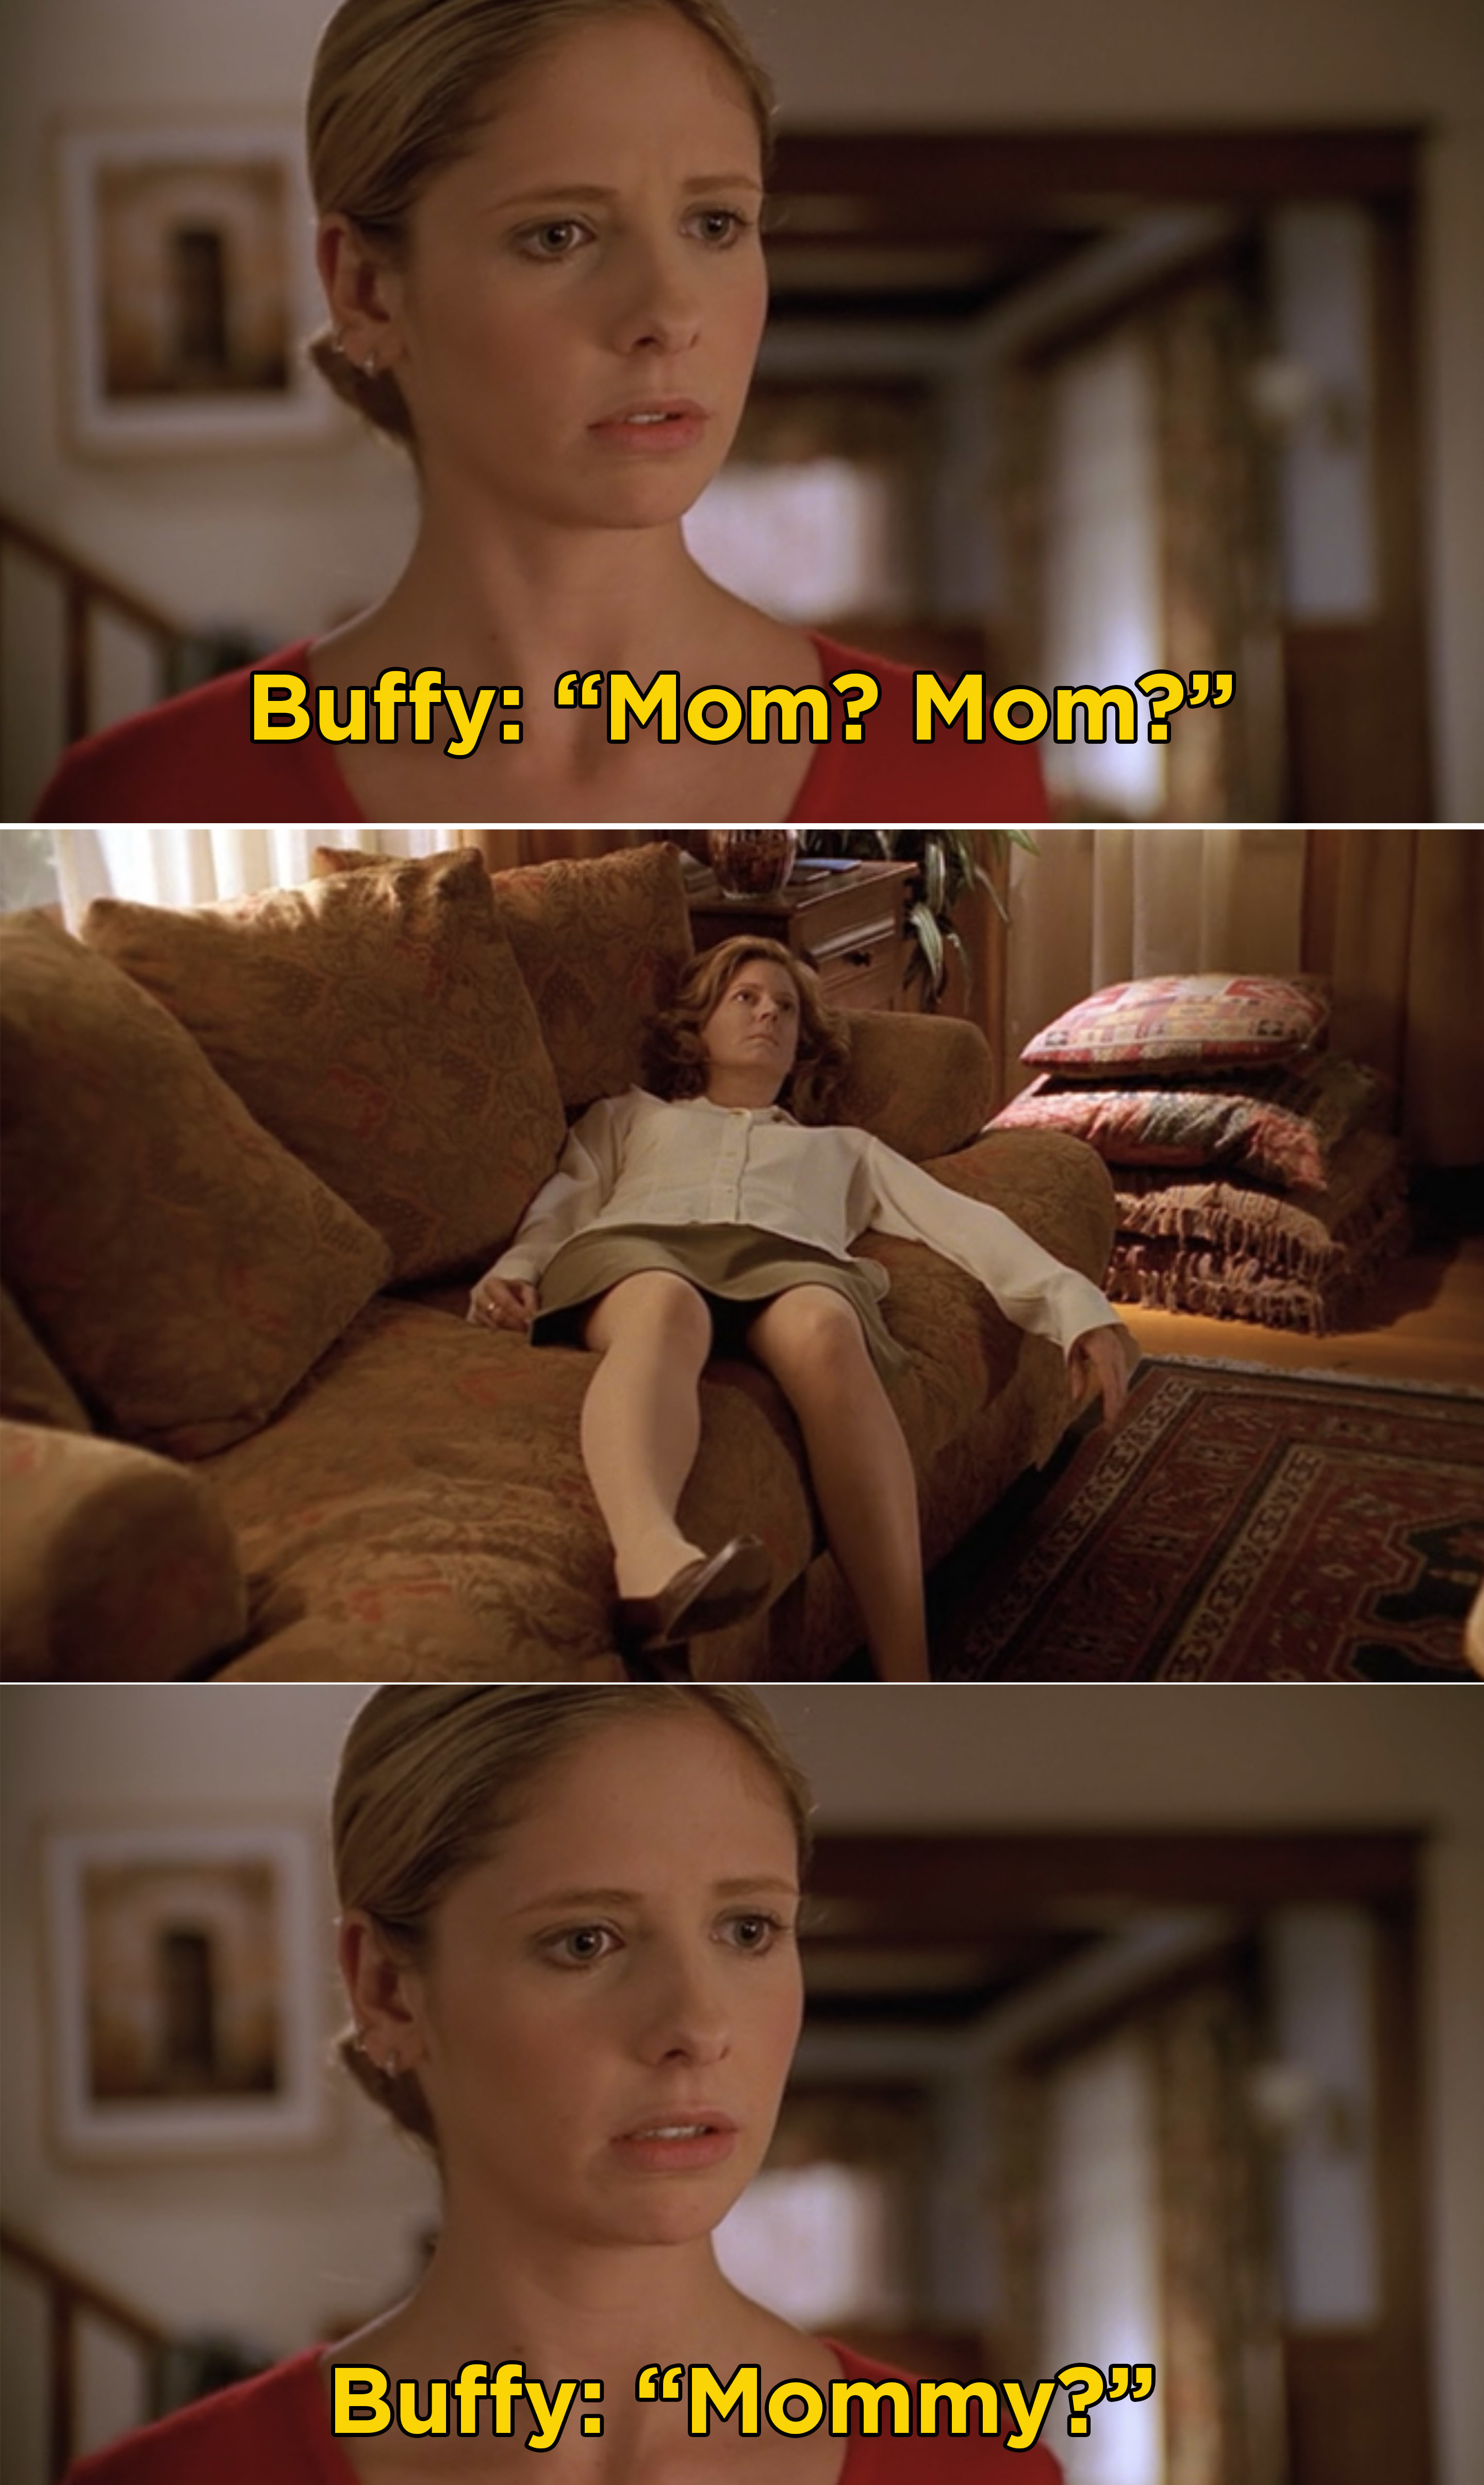 """Buffy finding her mom's body on the couch and saying, """"Mom? Mom? Mommy?"""""""